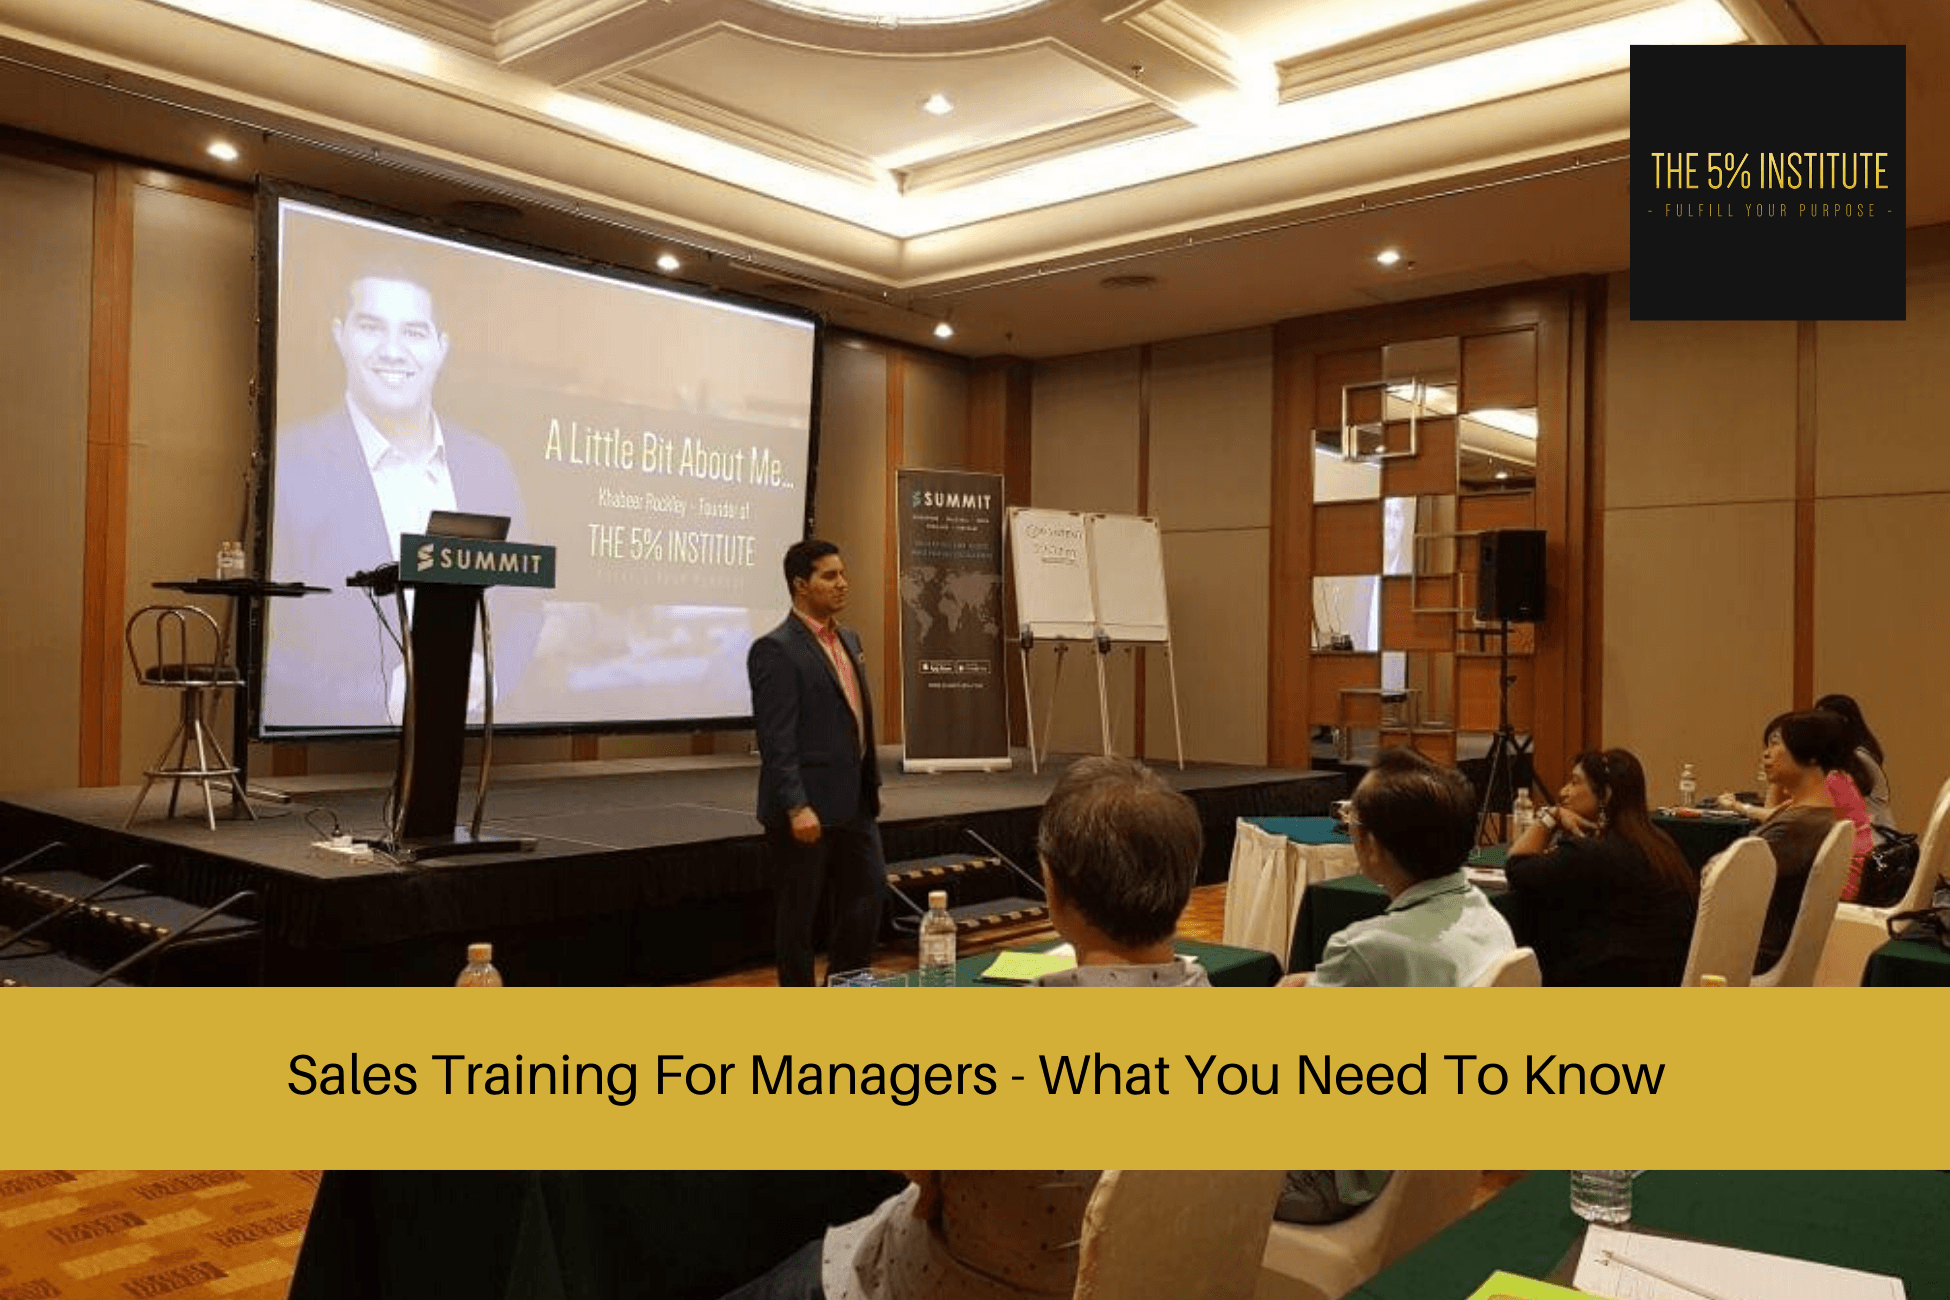 sales training for managers